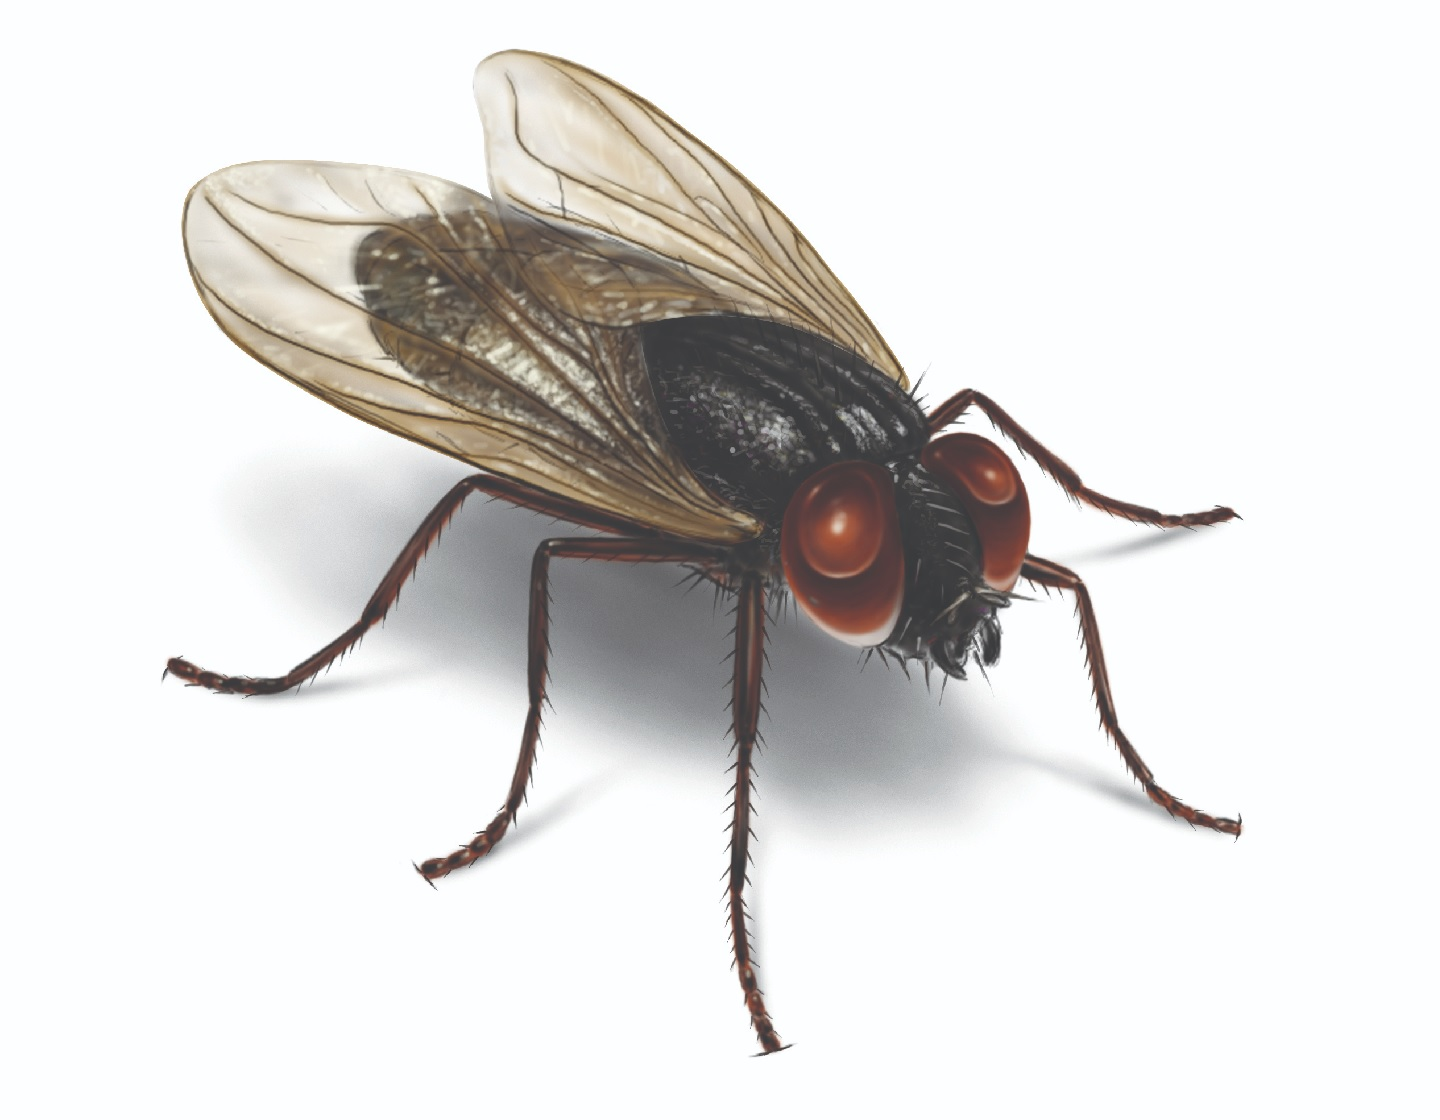 How to Get Rid of House Flies Naturally